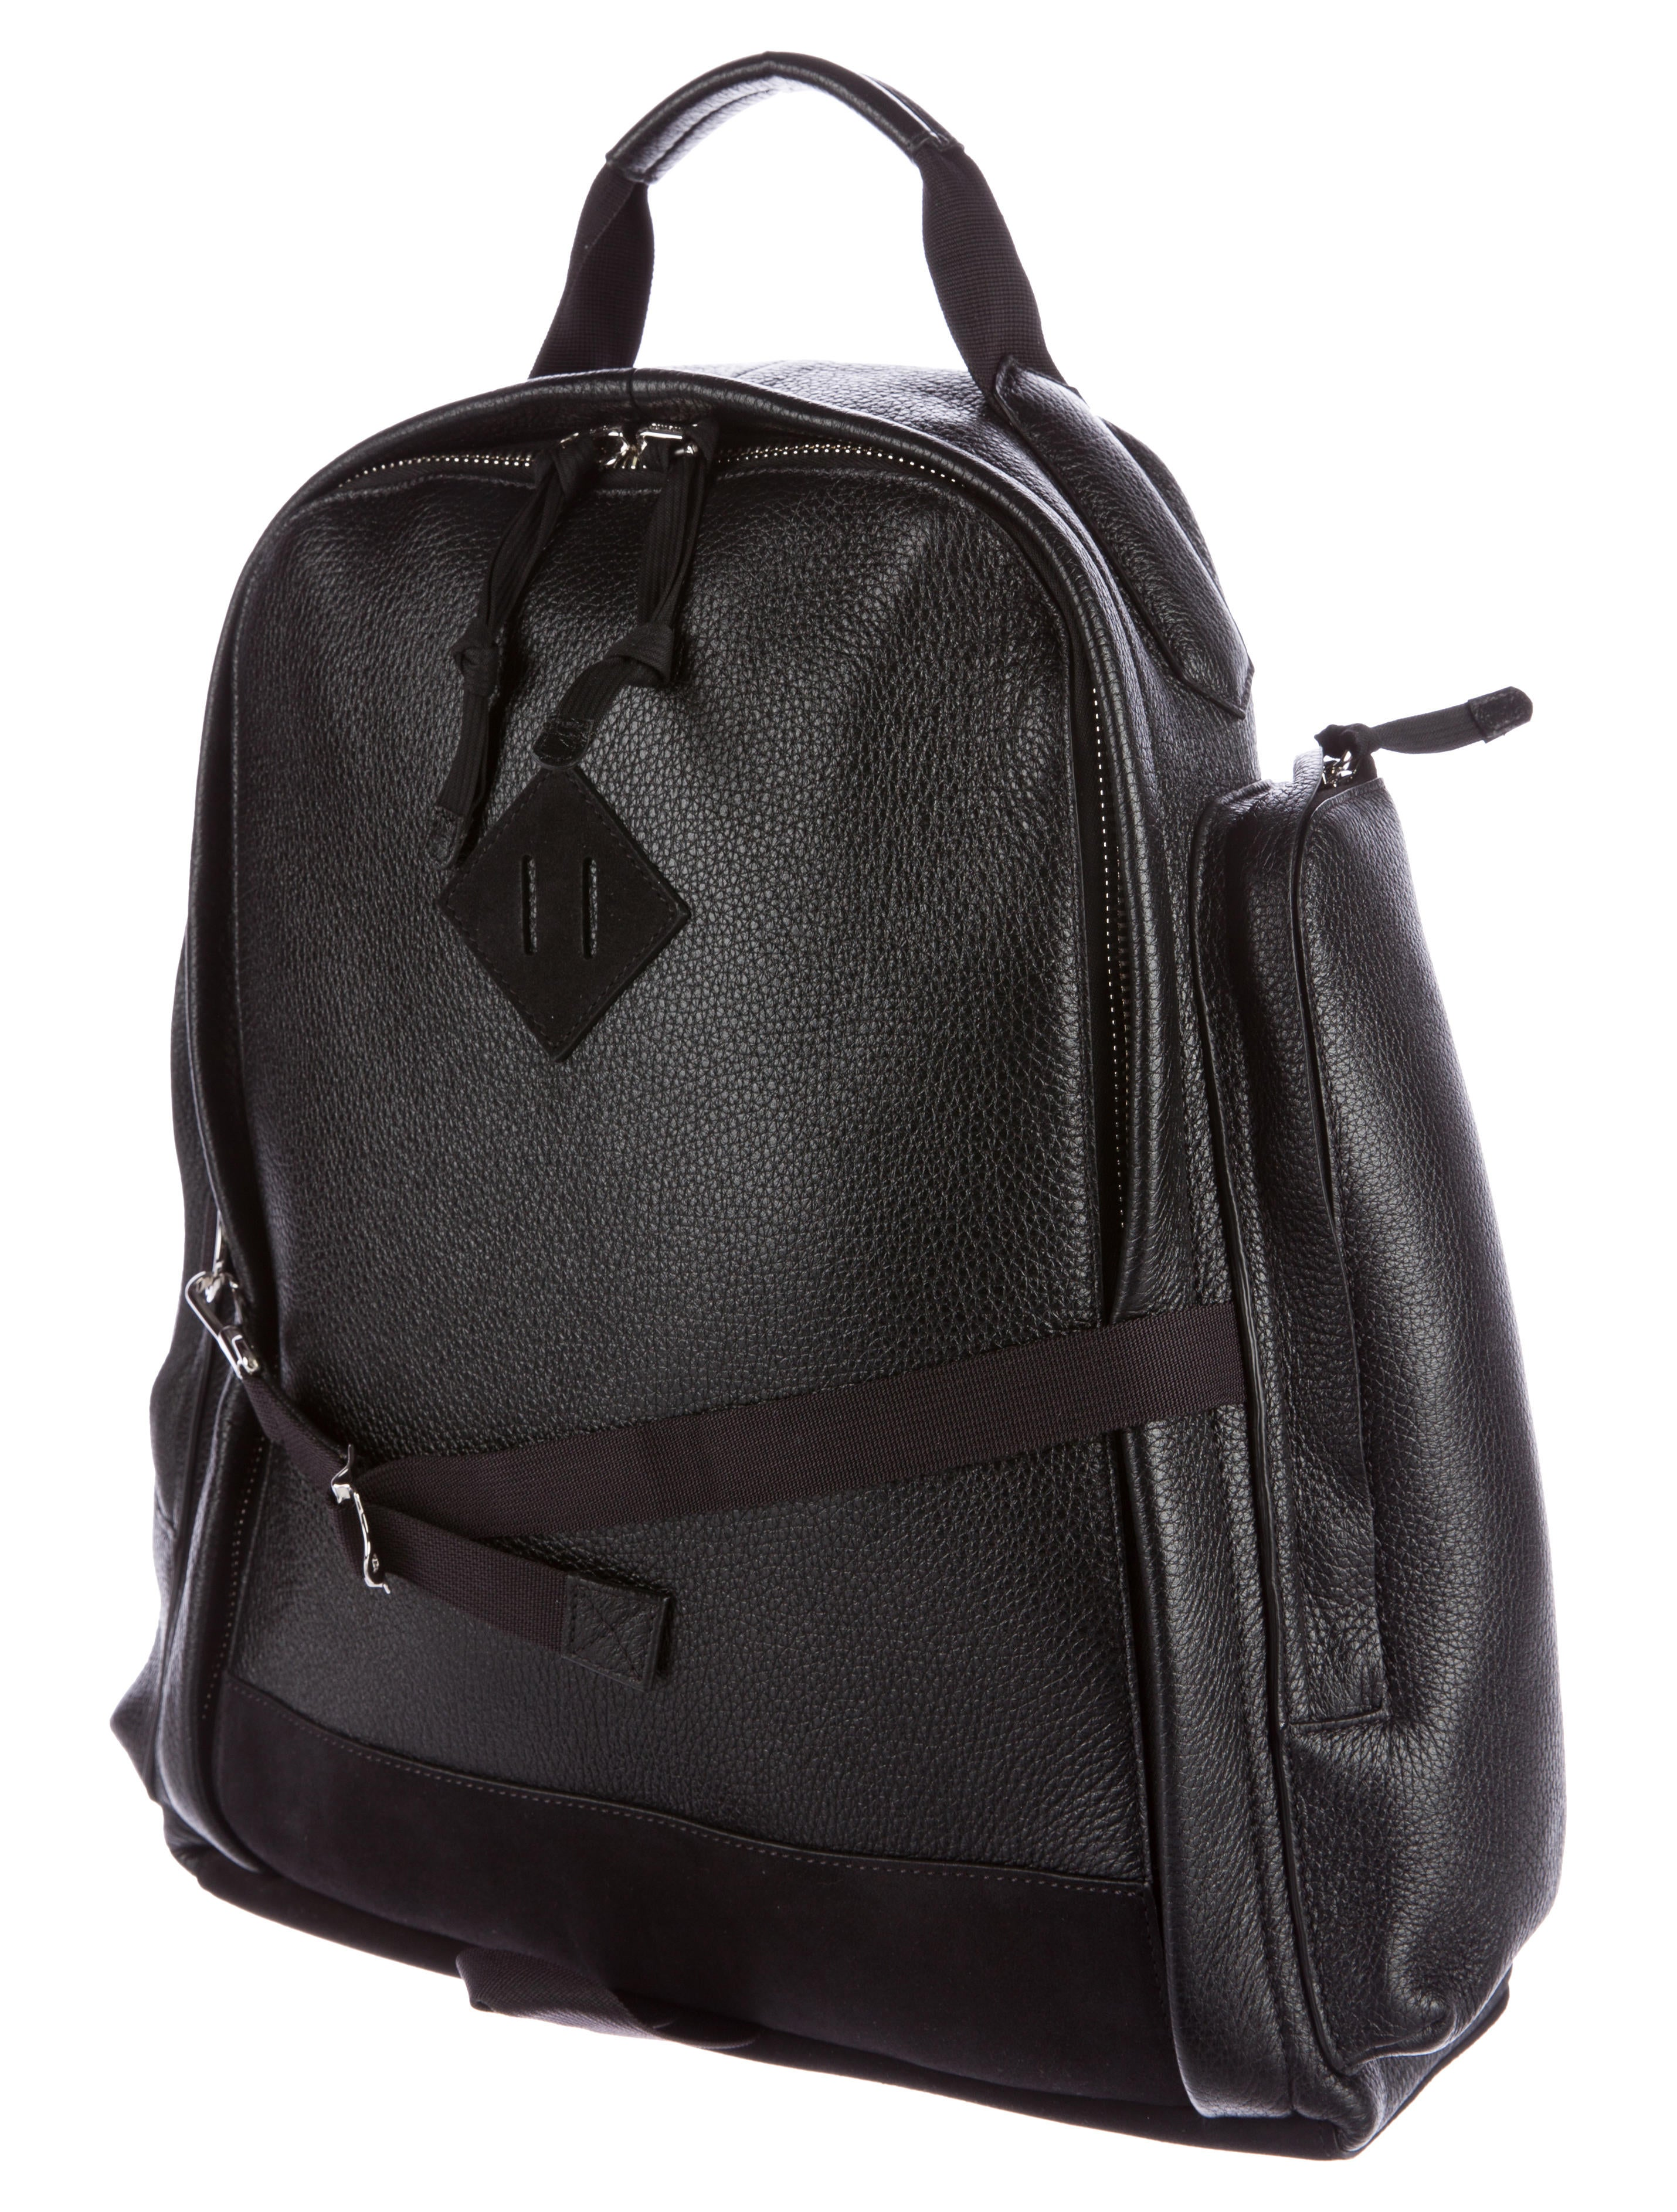 Tom Ford All-Around Zip Leather Backpack w/ Tags - Bags - TOM30953 ...